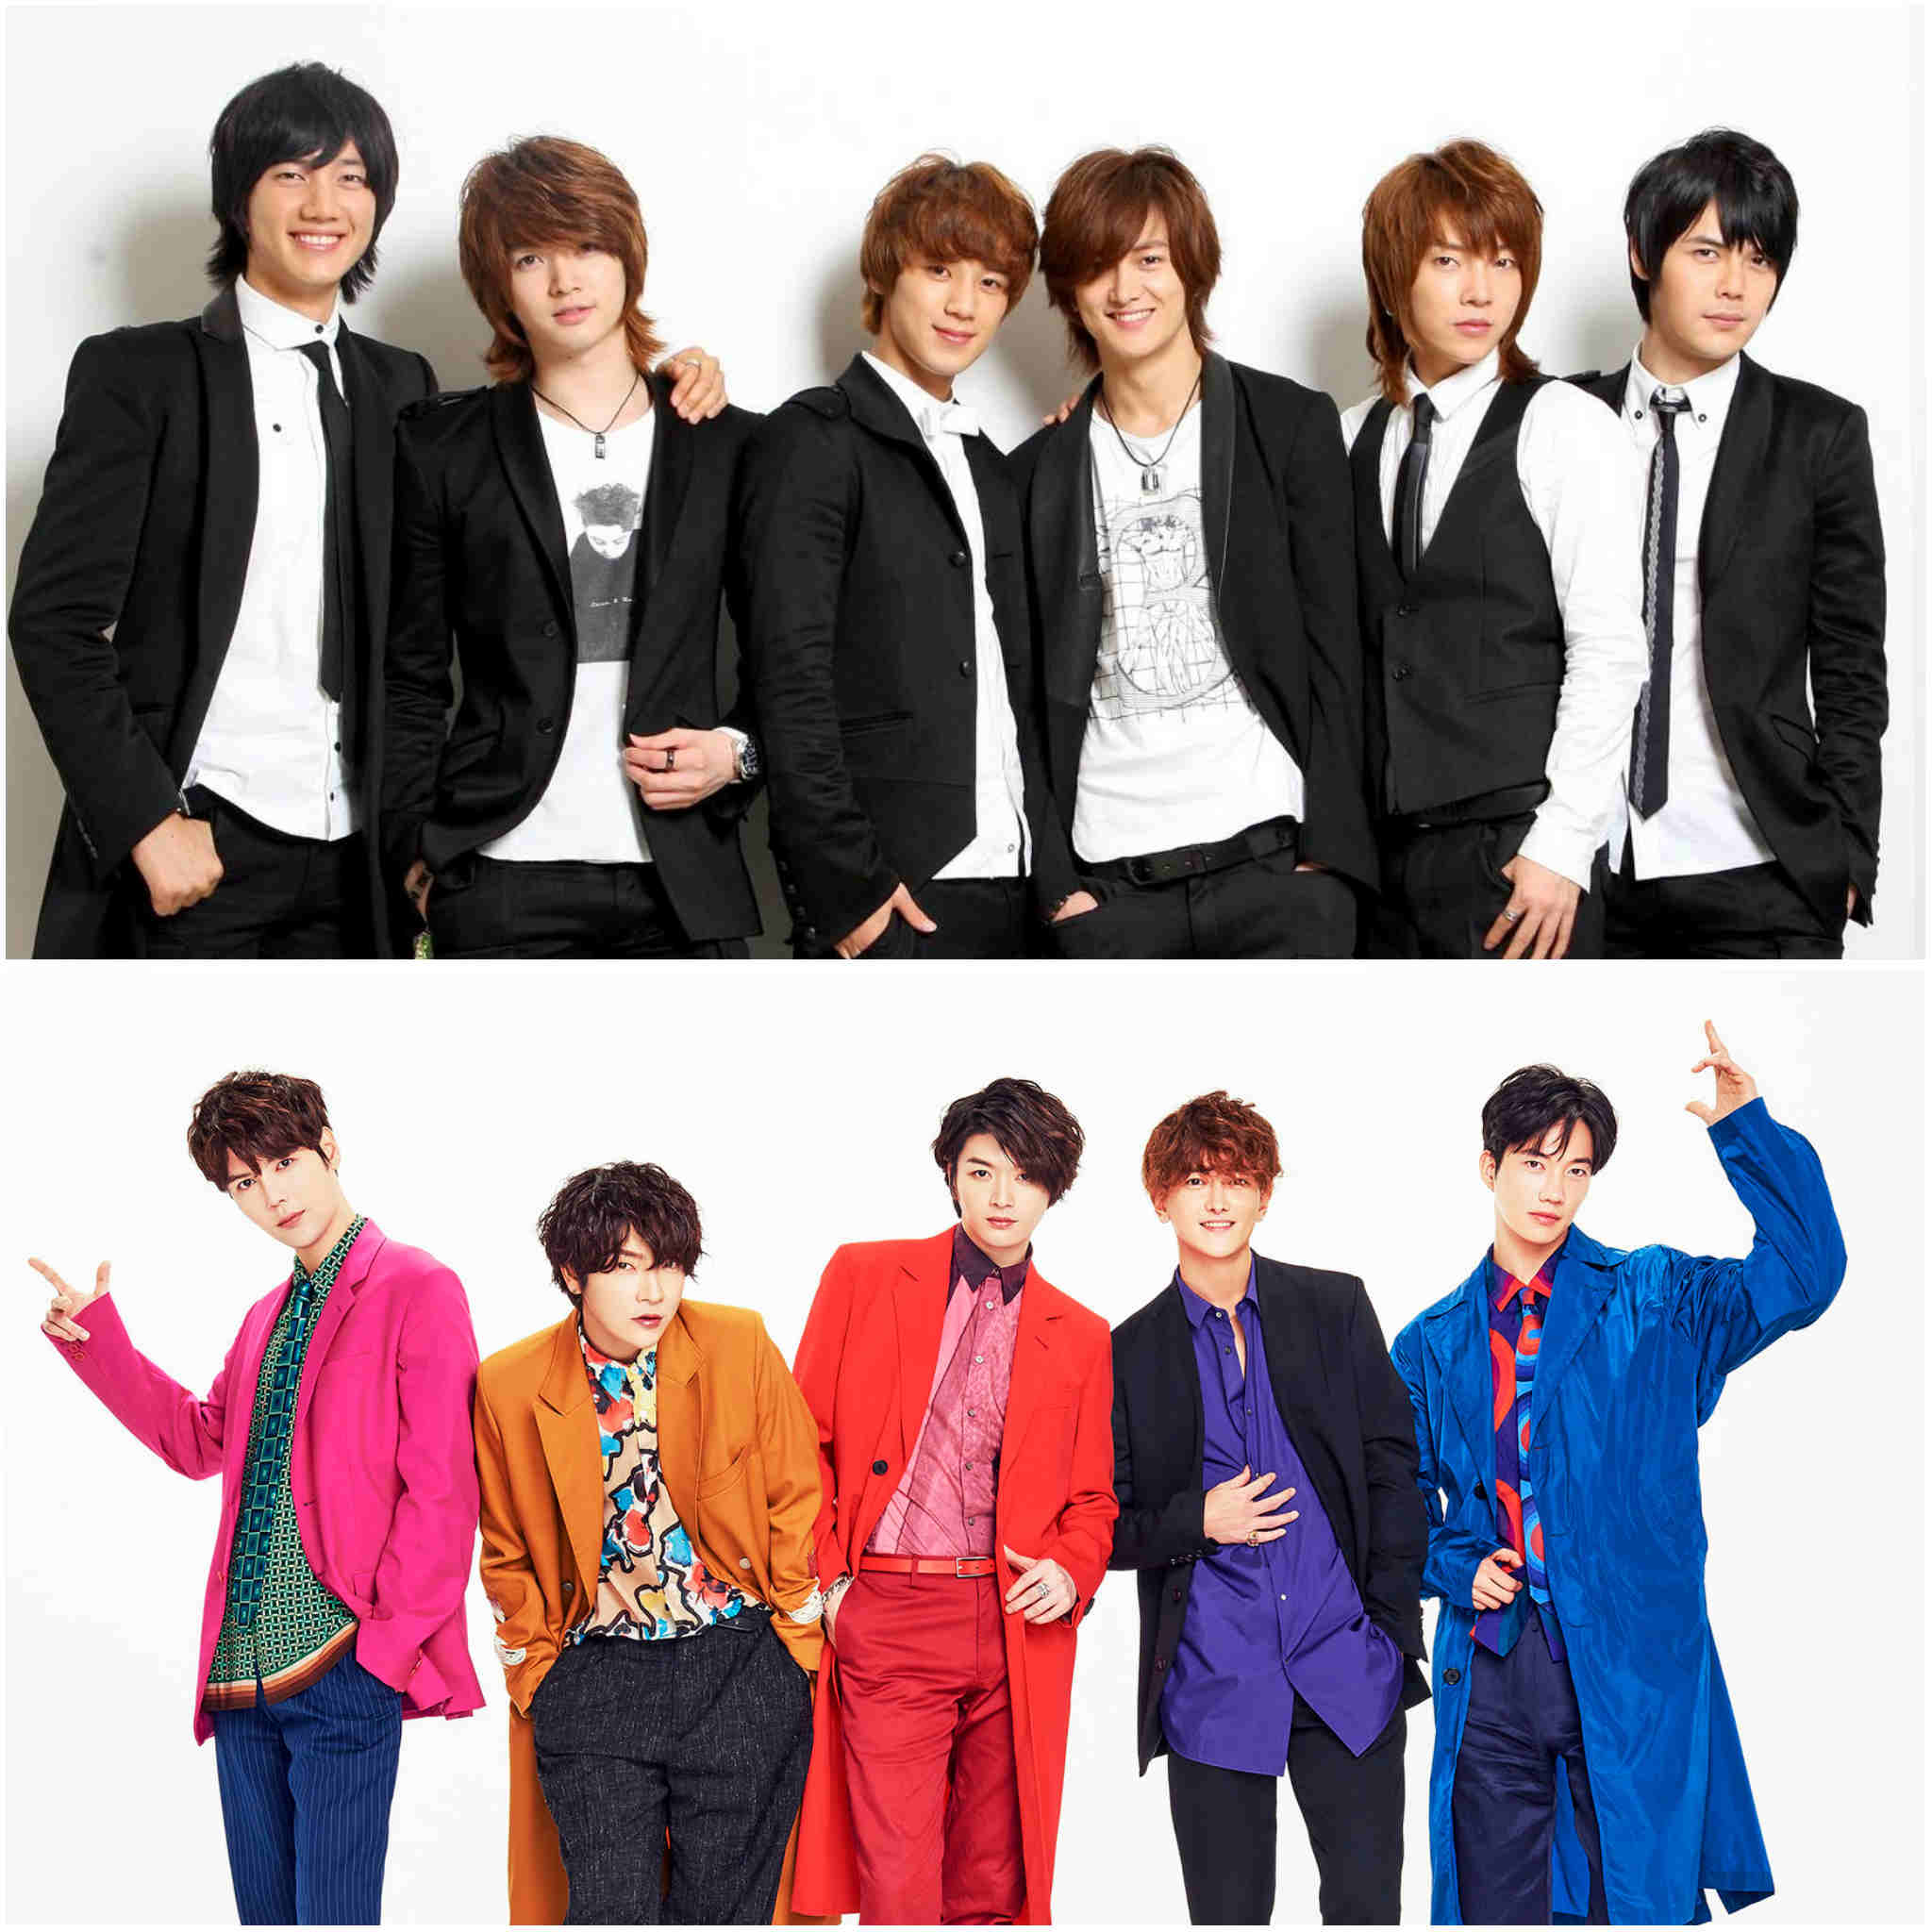 2nd generation K-pop groups - SUPERNOVA/Choshinsung/Choshinsei